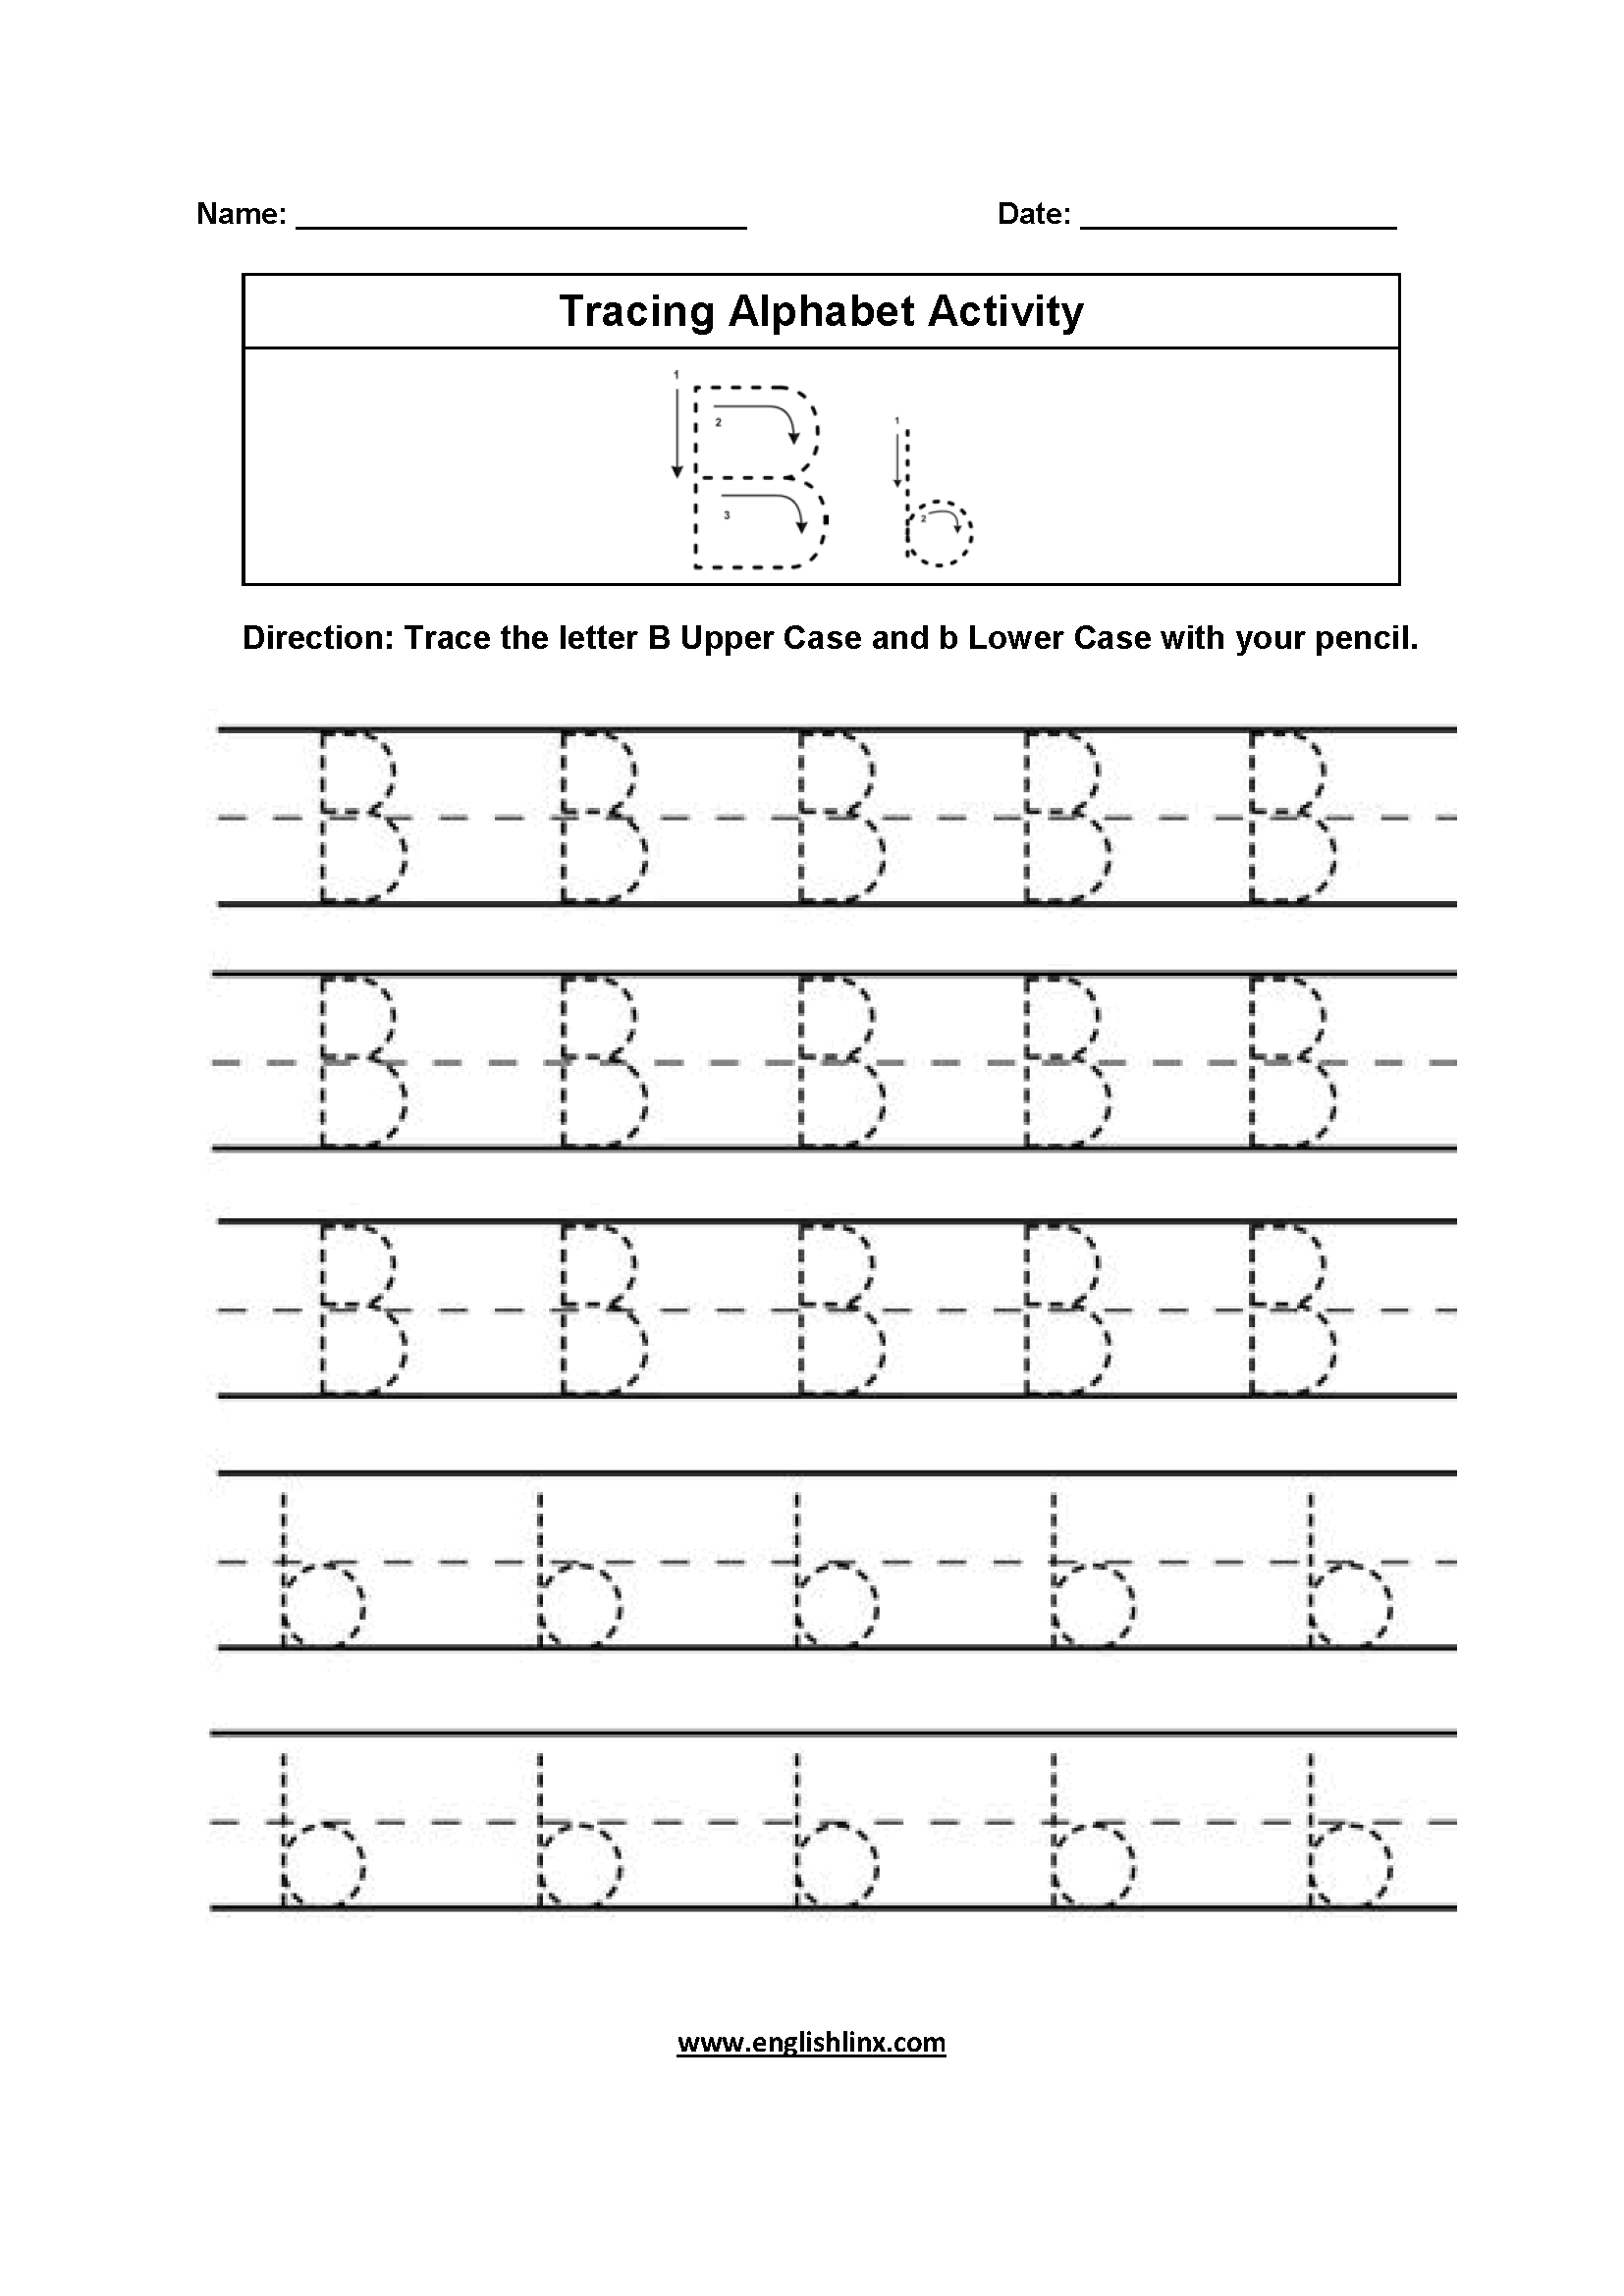 Letter B Tracing Alphabet Worksheets | Alphabet Worksheets pertaining to Tracing The Letters Of The Alphabet Worksheets